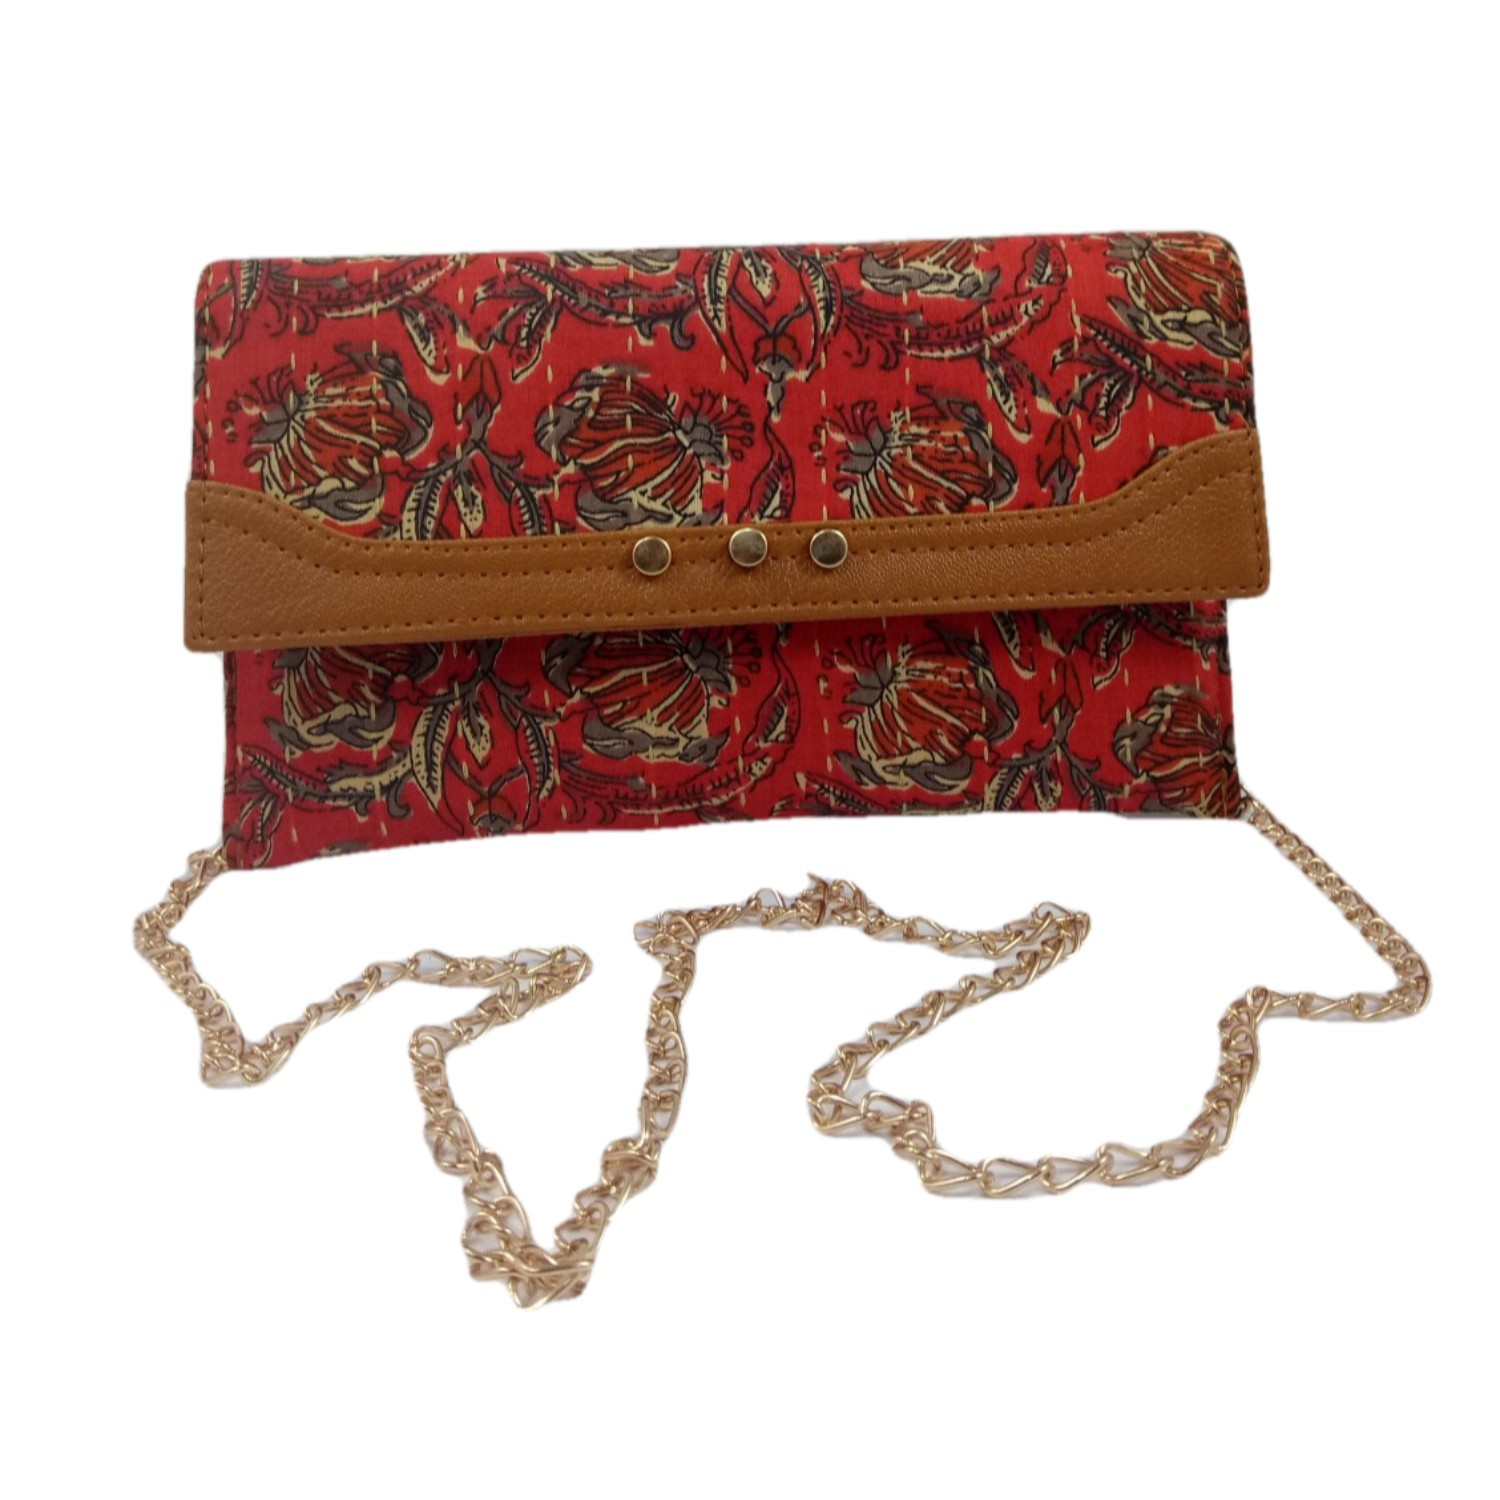 Handmade Excellent Red Genuine Clutch With Detachable Chain by Women Self Help Groups of Rajasthan